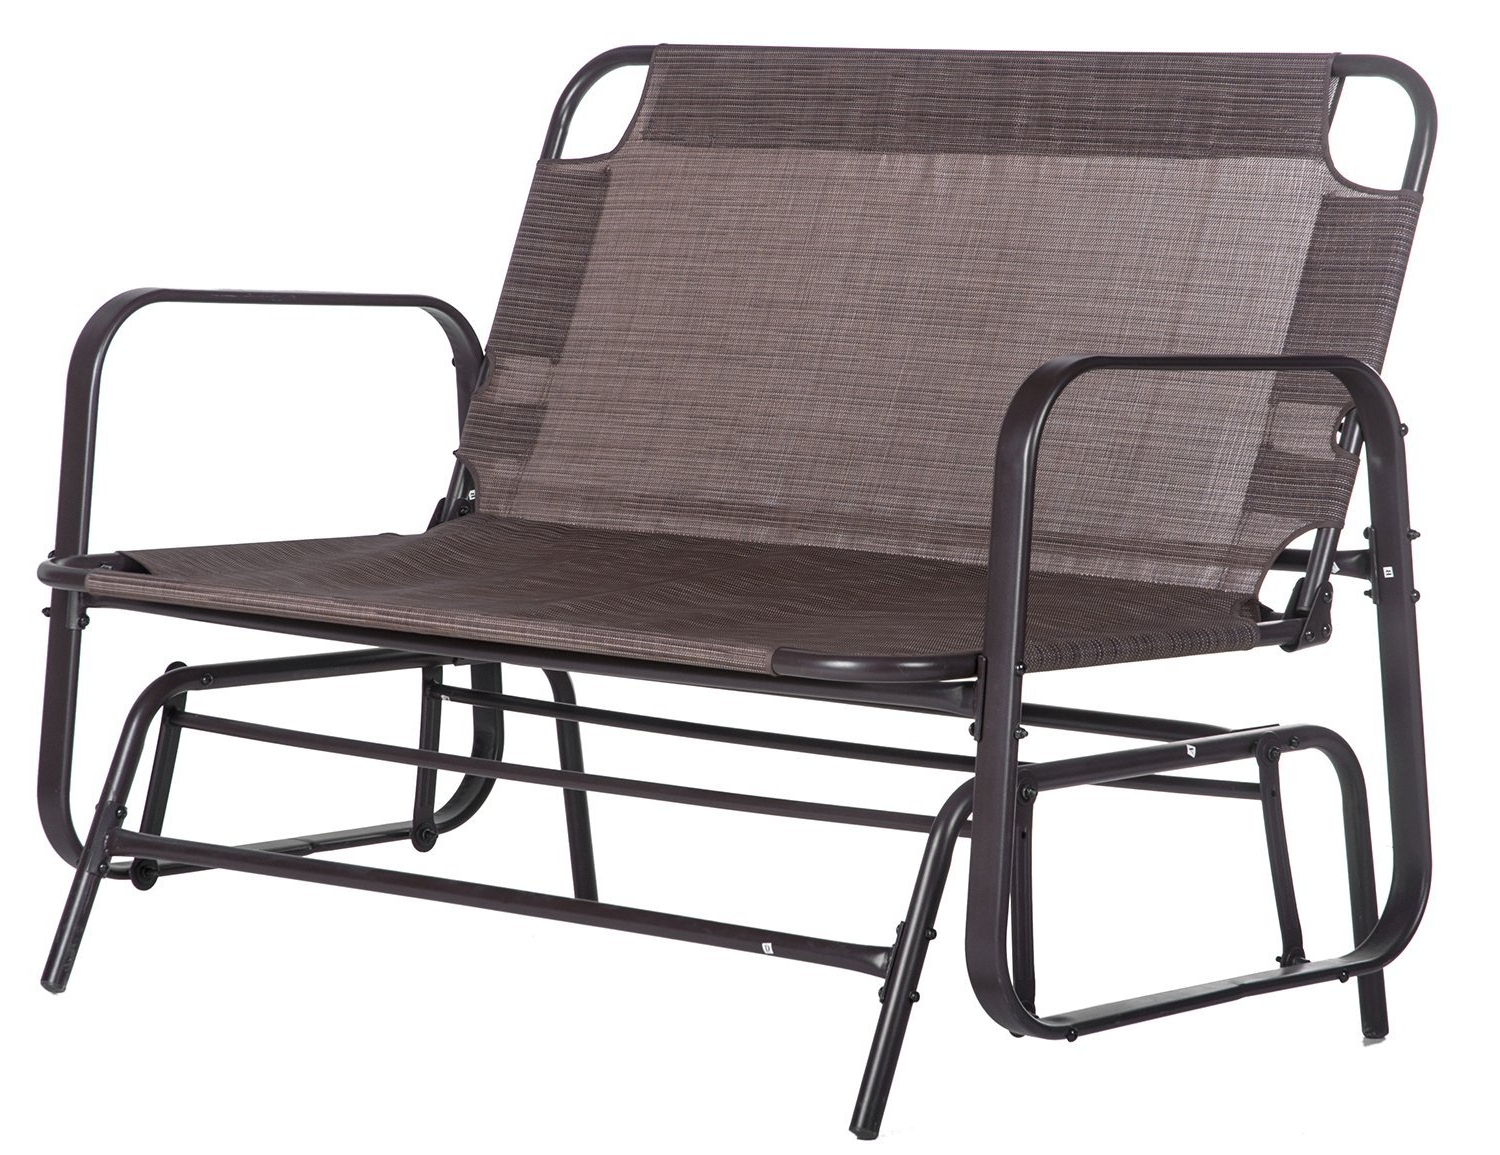 Well Liked Buy Merax Patio Loveseat Glider Rocking Chair Garden Outdoor In Rocking Benches With Cushions (View 28 of 30)